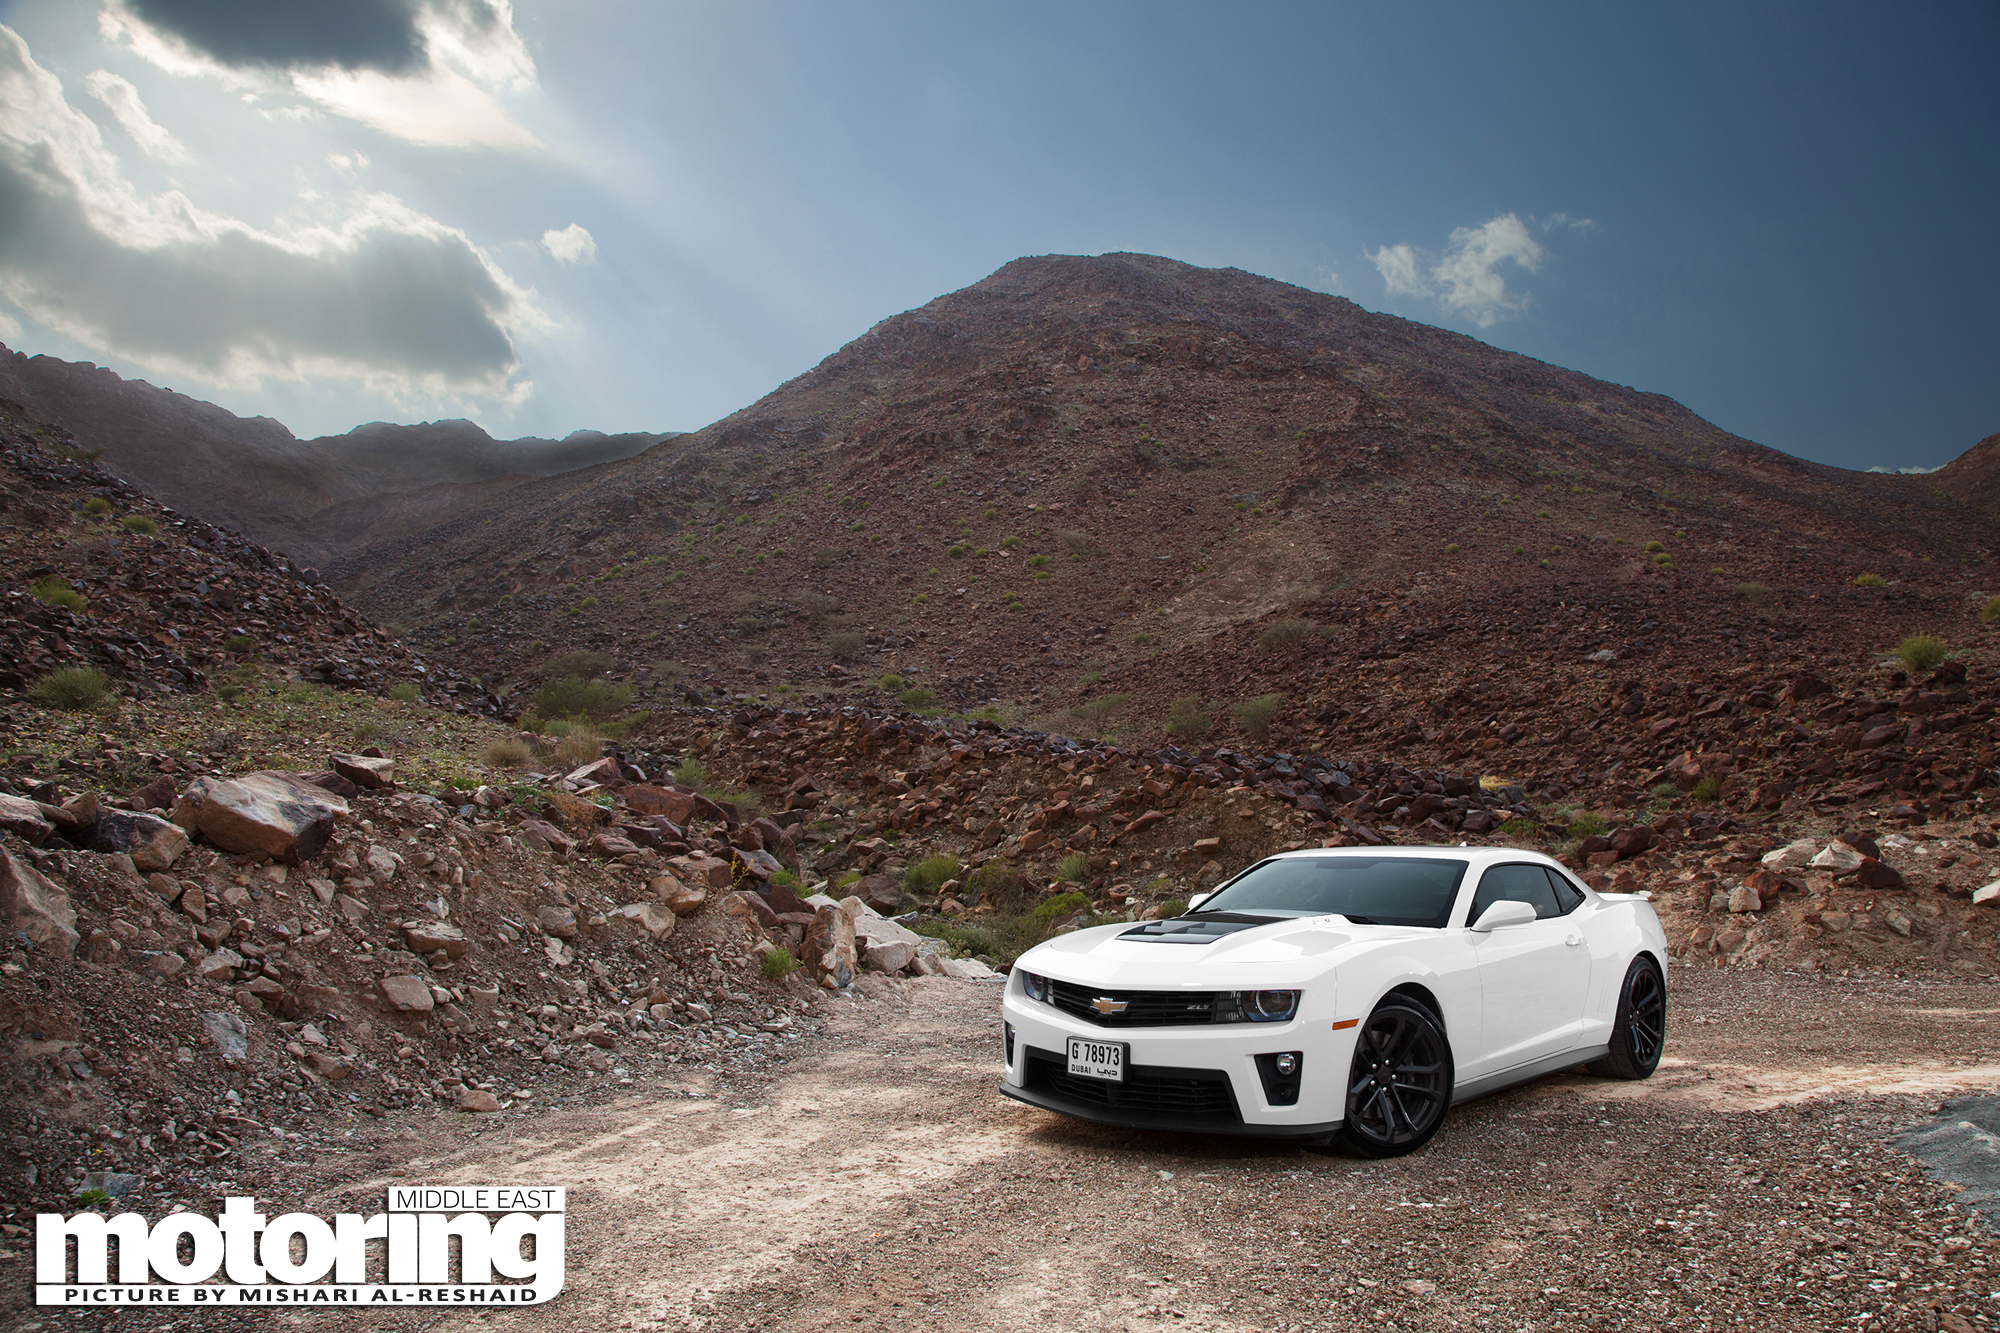 2014 Chevrolet Camaro Zl1 Middle East Price Spec Amp Reviewmotoring Middle East Car News